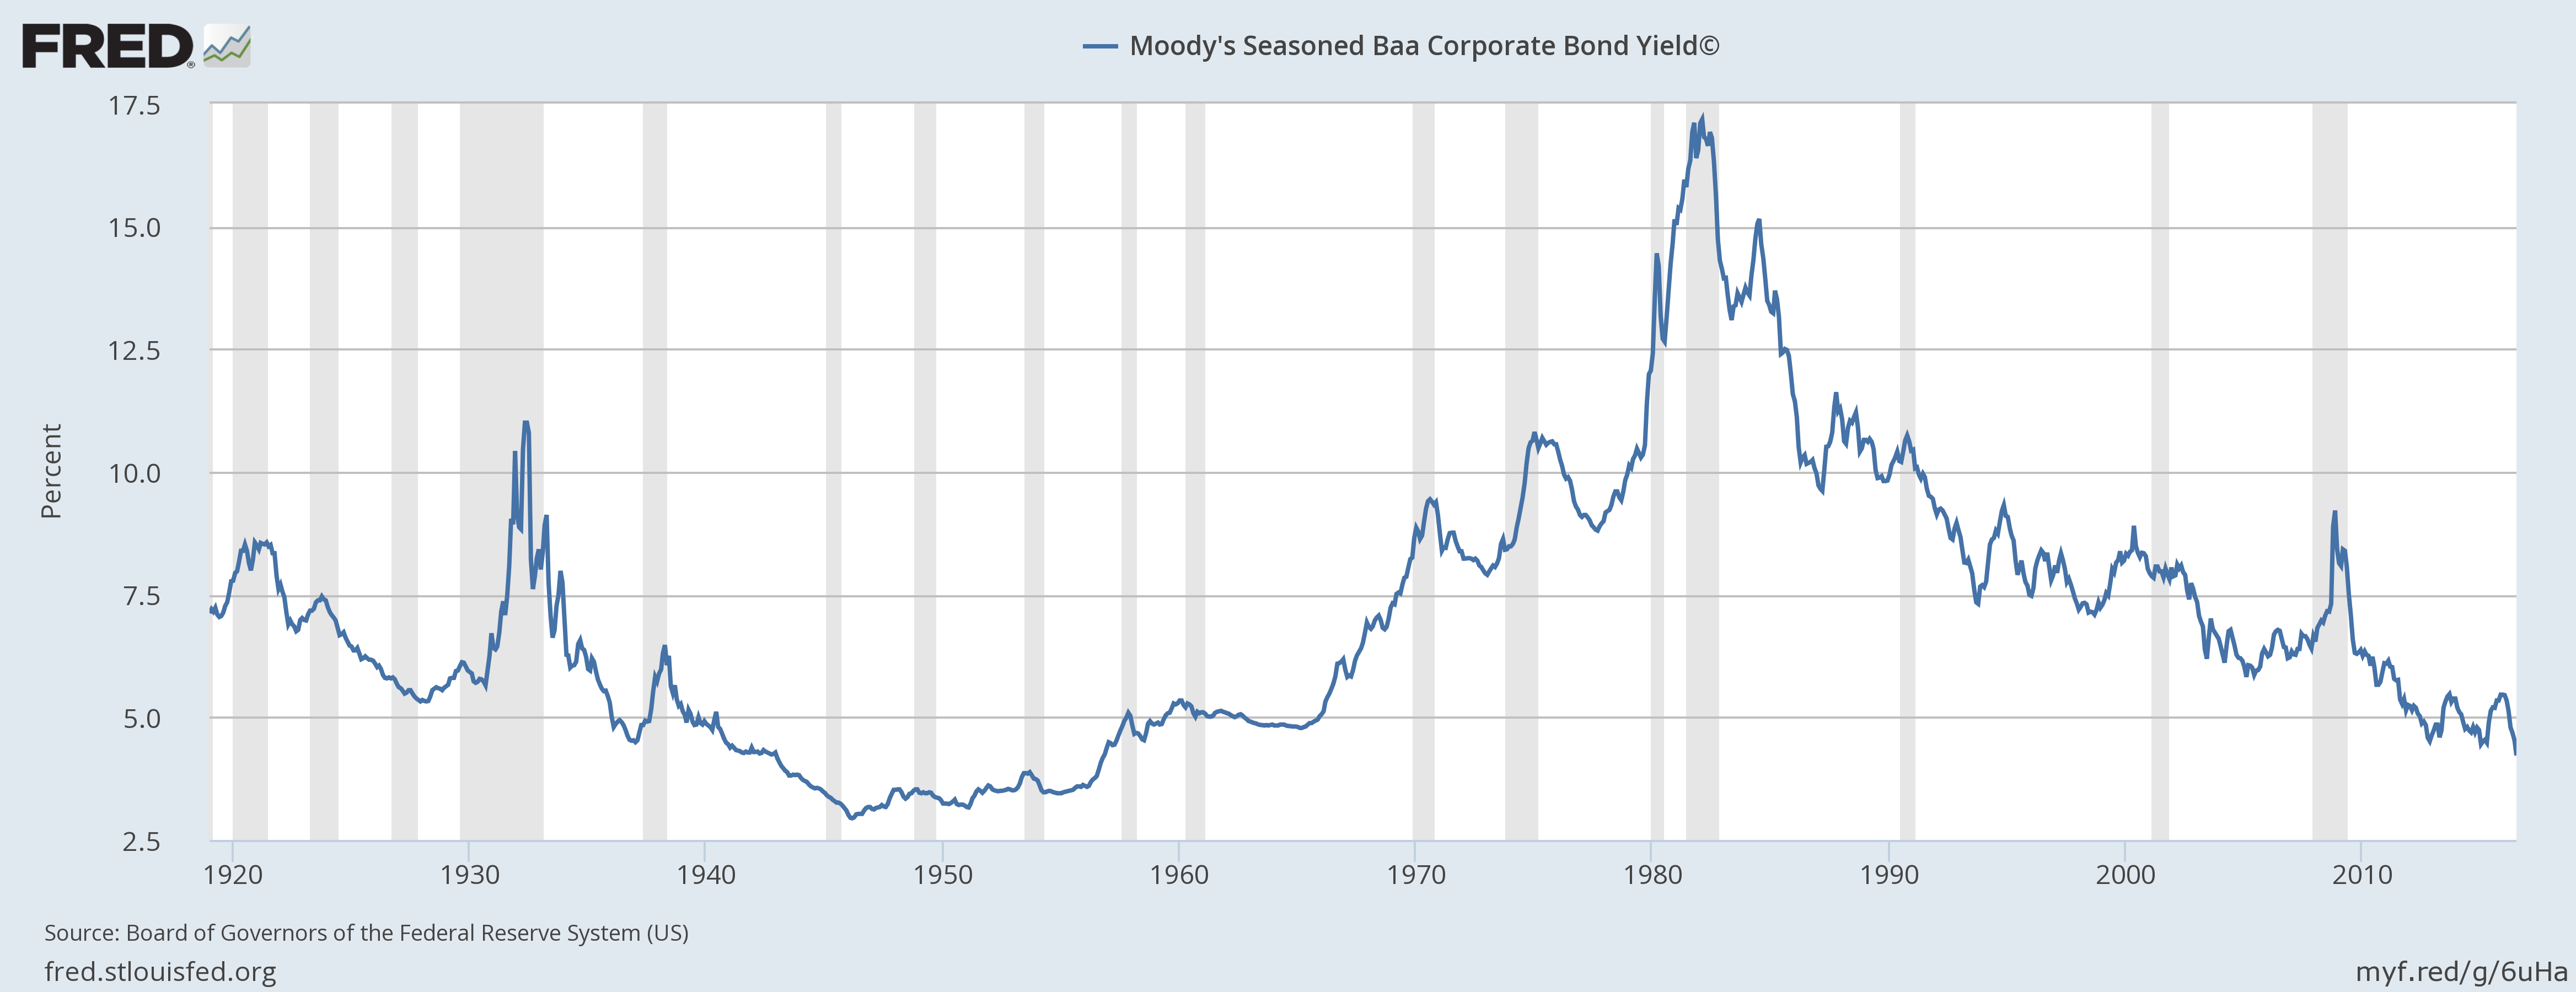 Again It Isnt Clear That This Is Constant If You Wanted To Say There Was A Tendency For The Corporate Rate Here Be About 5 Over Long Run Okay